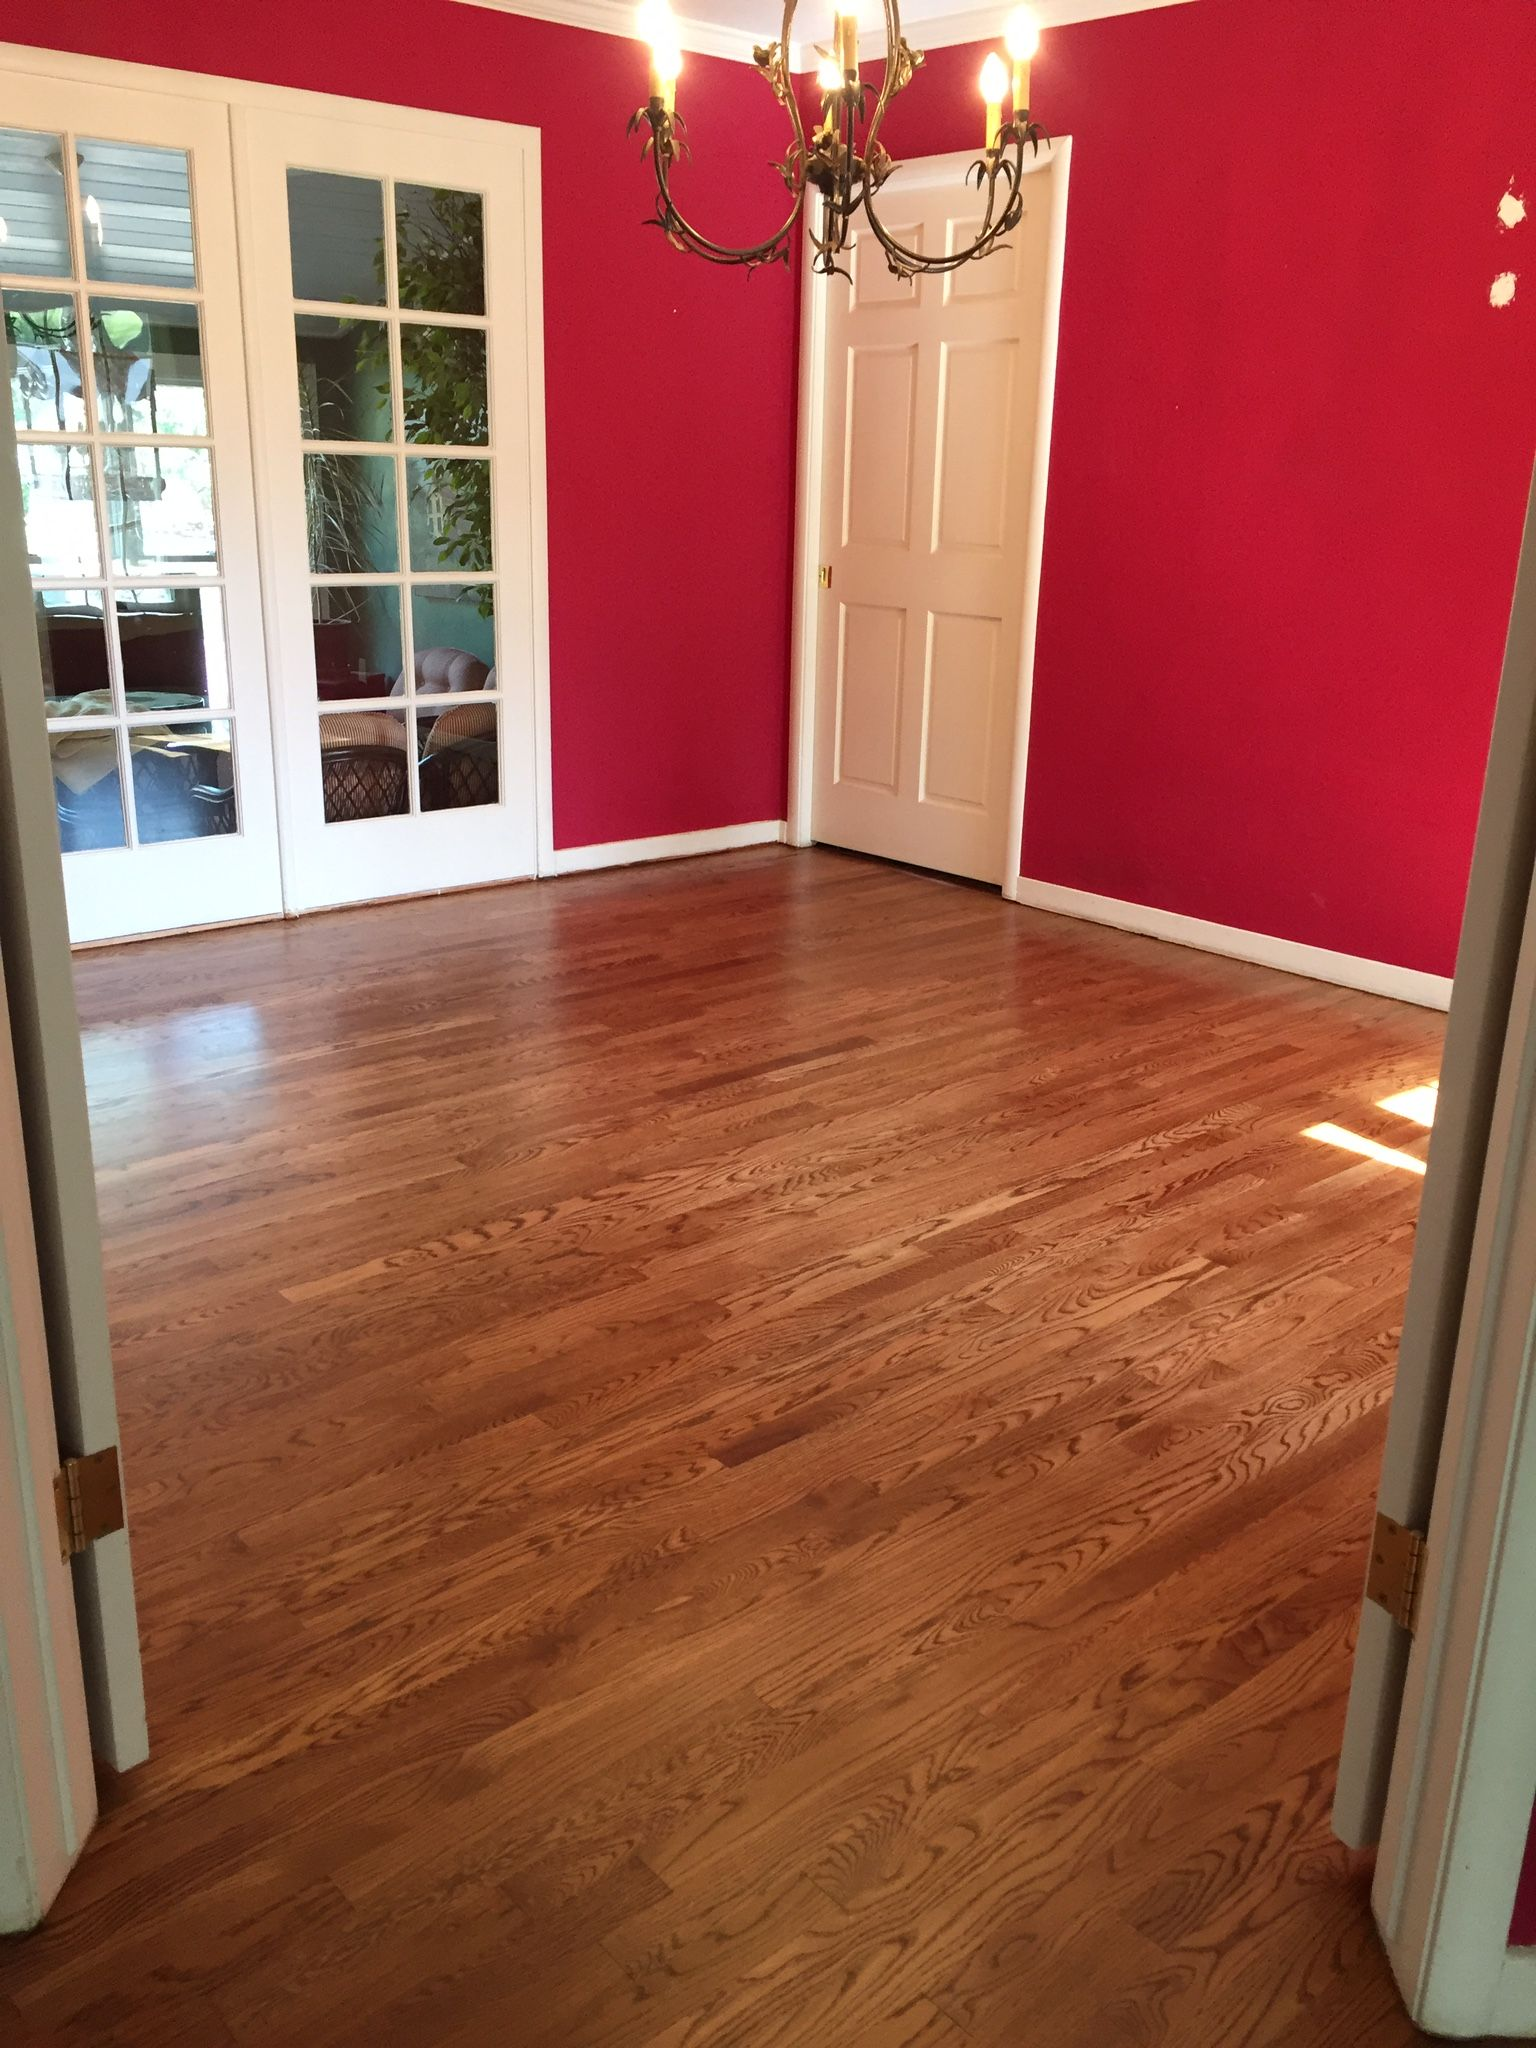 This Is The Dining Room With New White Oak Floors Stained